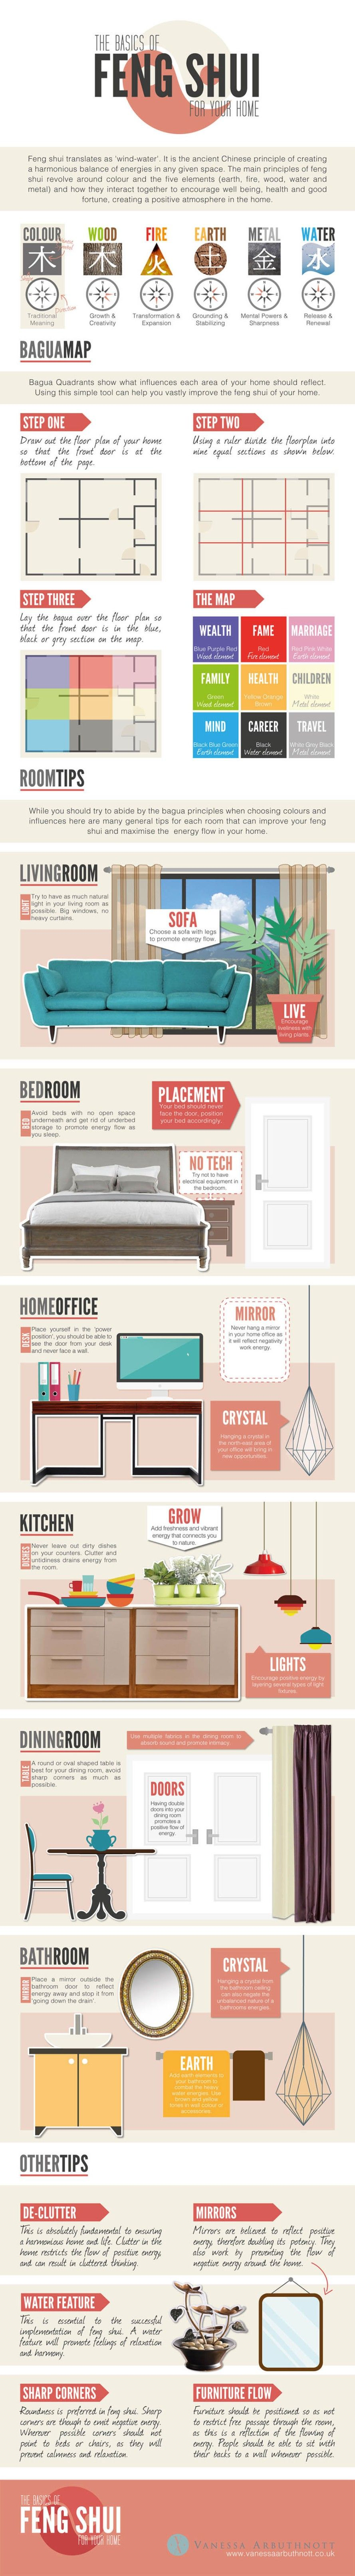 infographic your basic guide to feng shui for the home feng shui pinterest. Black Bedroom Furniture Sets. Home Design Ideas